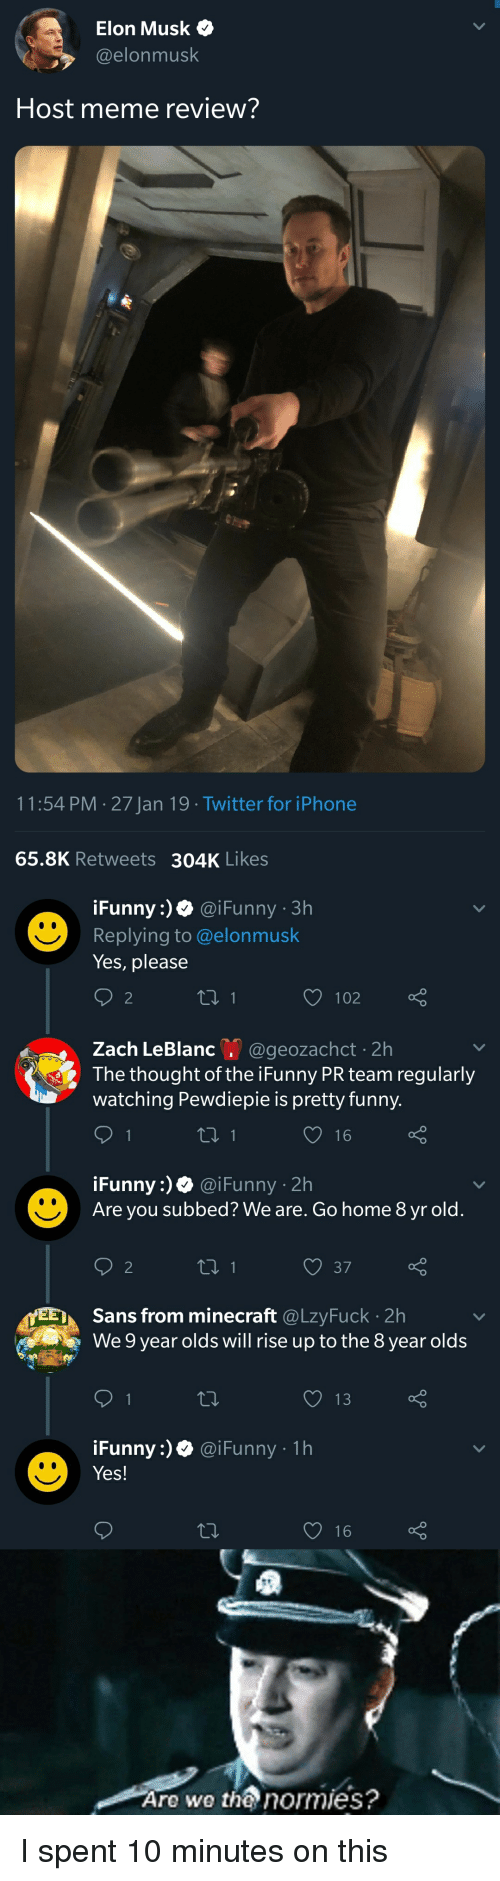 funny ifunny: Elon Musk  @elonmusk  Host meme review?  11:54 PM 27 Jan 19 Twitter for iPhone  65.8K Retweets  304K Likes  iFunny:)0 @iFunny 3h  Replying to @elonmusk  Yes, please  2  Zach LeBlanc. @geozachct-2h  The thought of the iFunny PR team regularly  watching Pewdiepie is pretty funny  iFunny:) @iFunny 2h  Are you subbed? We are. Go home 8 yr old.  2  Sans from minecraft @LzyFuck 2h  We 9 year olds will rise up to the 8 year olds  Funny :) Ф @i Funny . 1 h  Yes!  16  Are we tha normies?